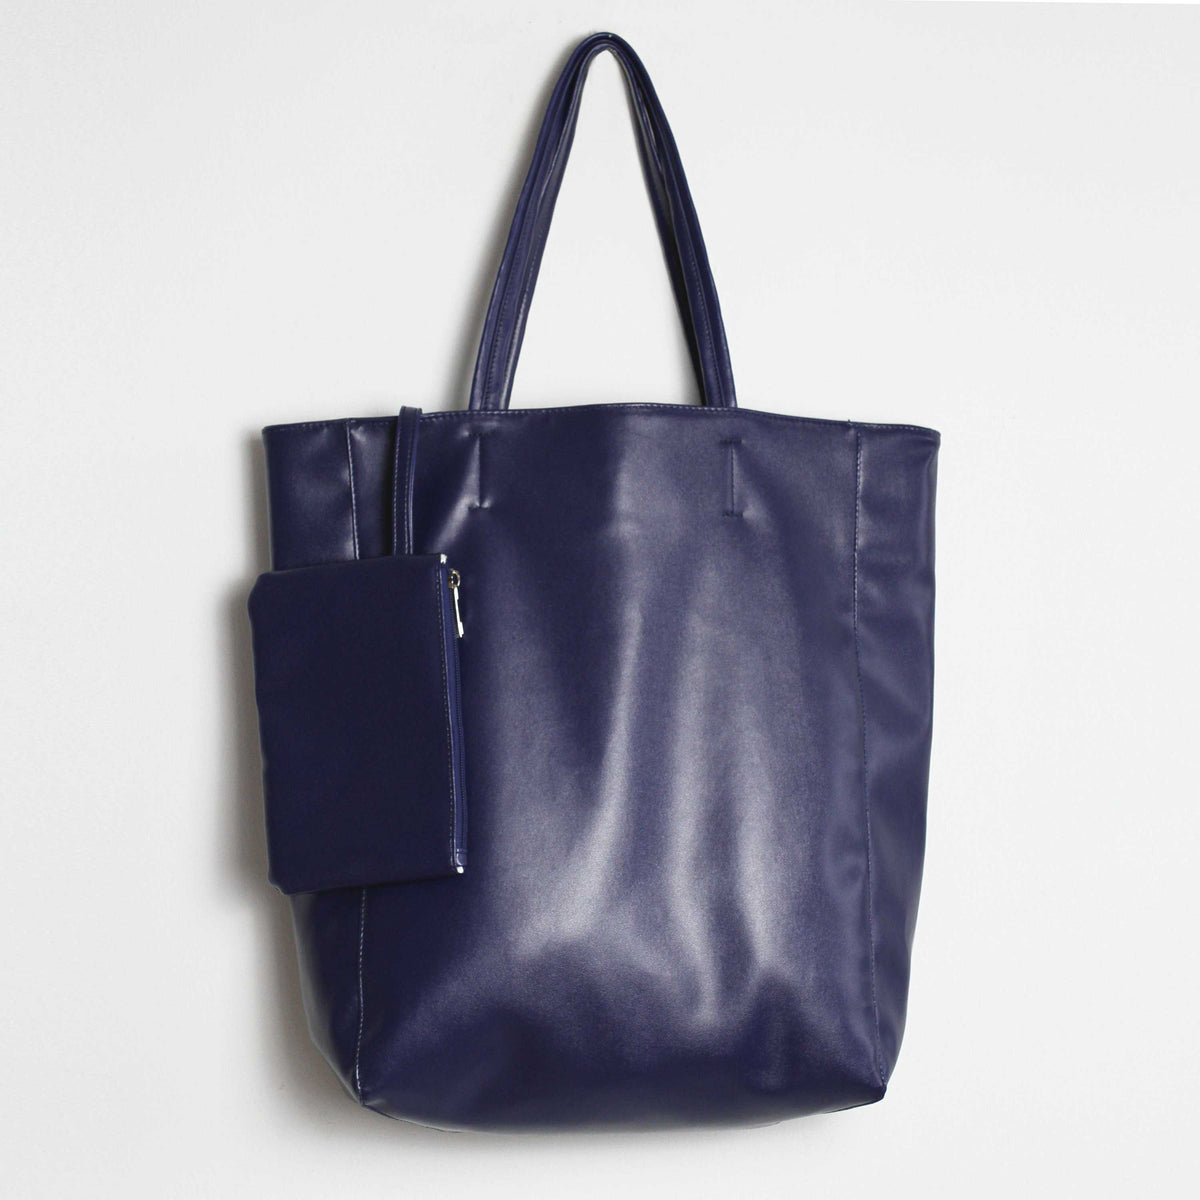 "Oversized Eco Vegan Leather Lambskin Tote Bag 16.7"" With Little Purse Inside - worthtryit.com"